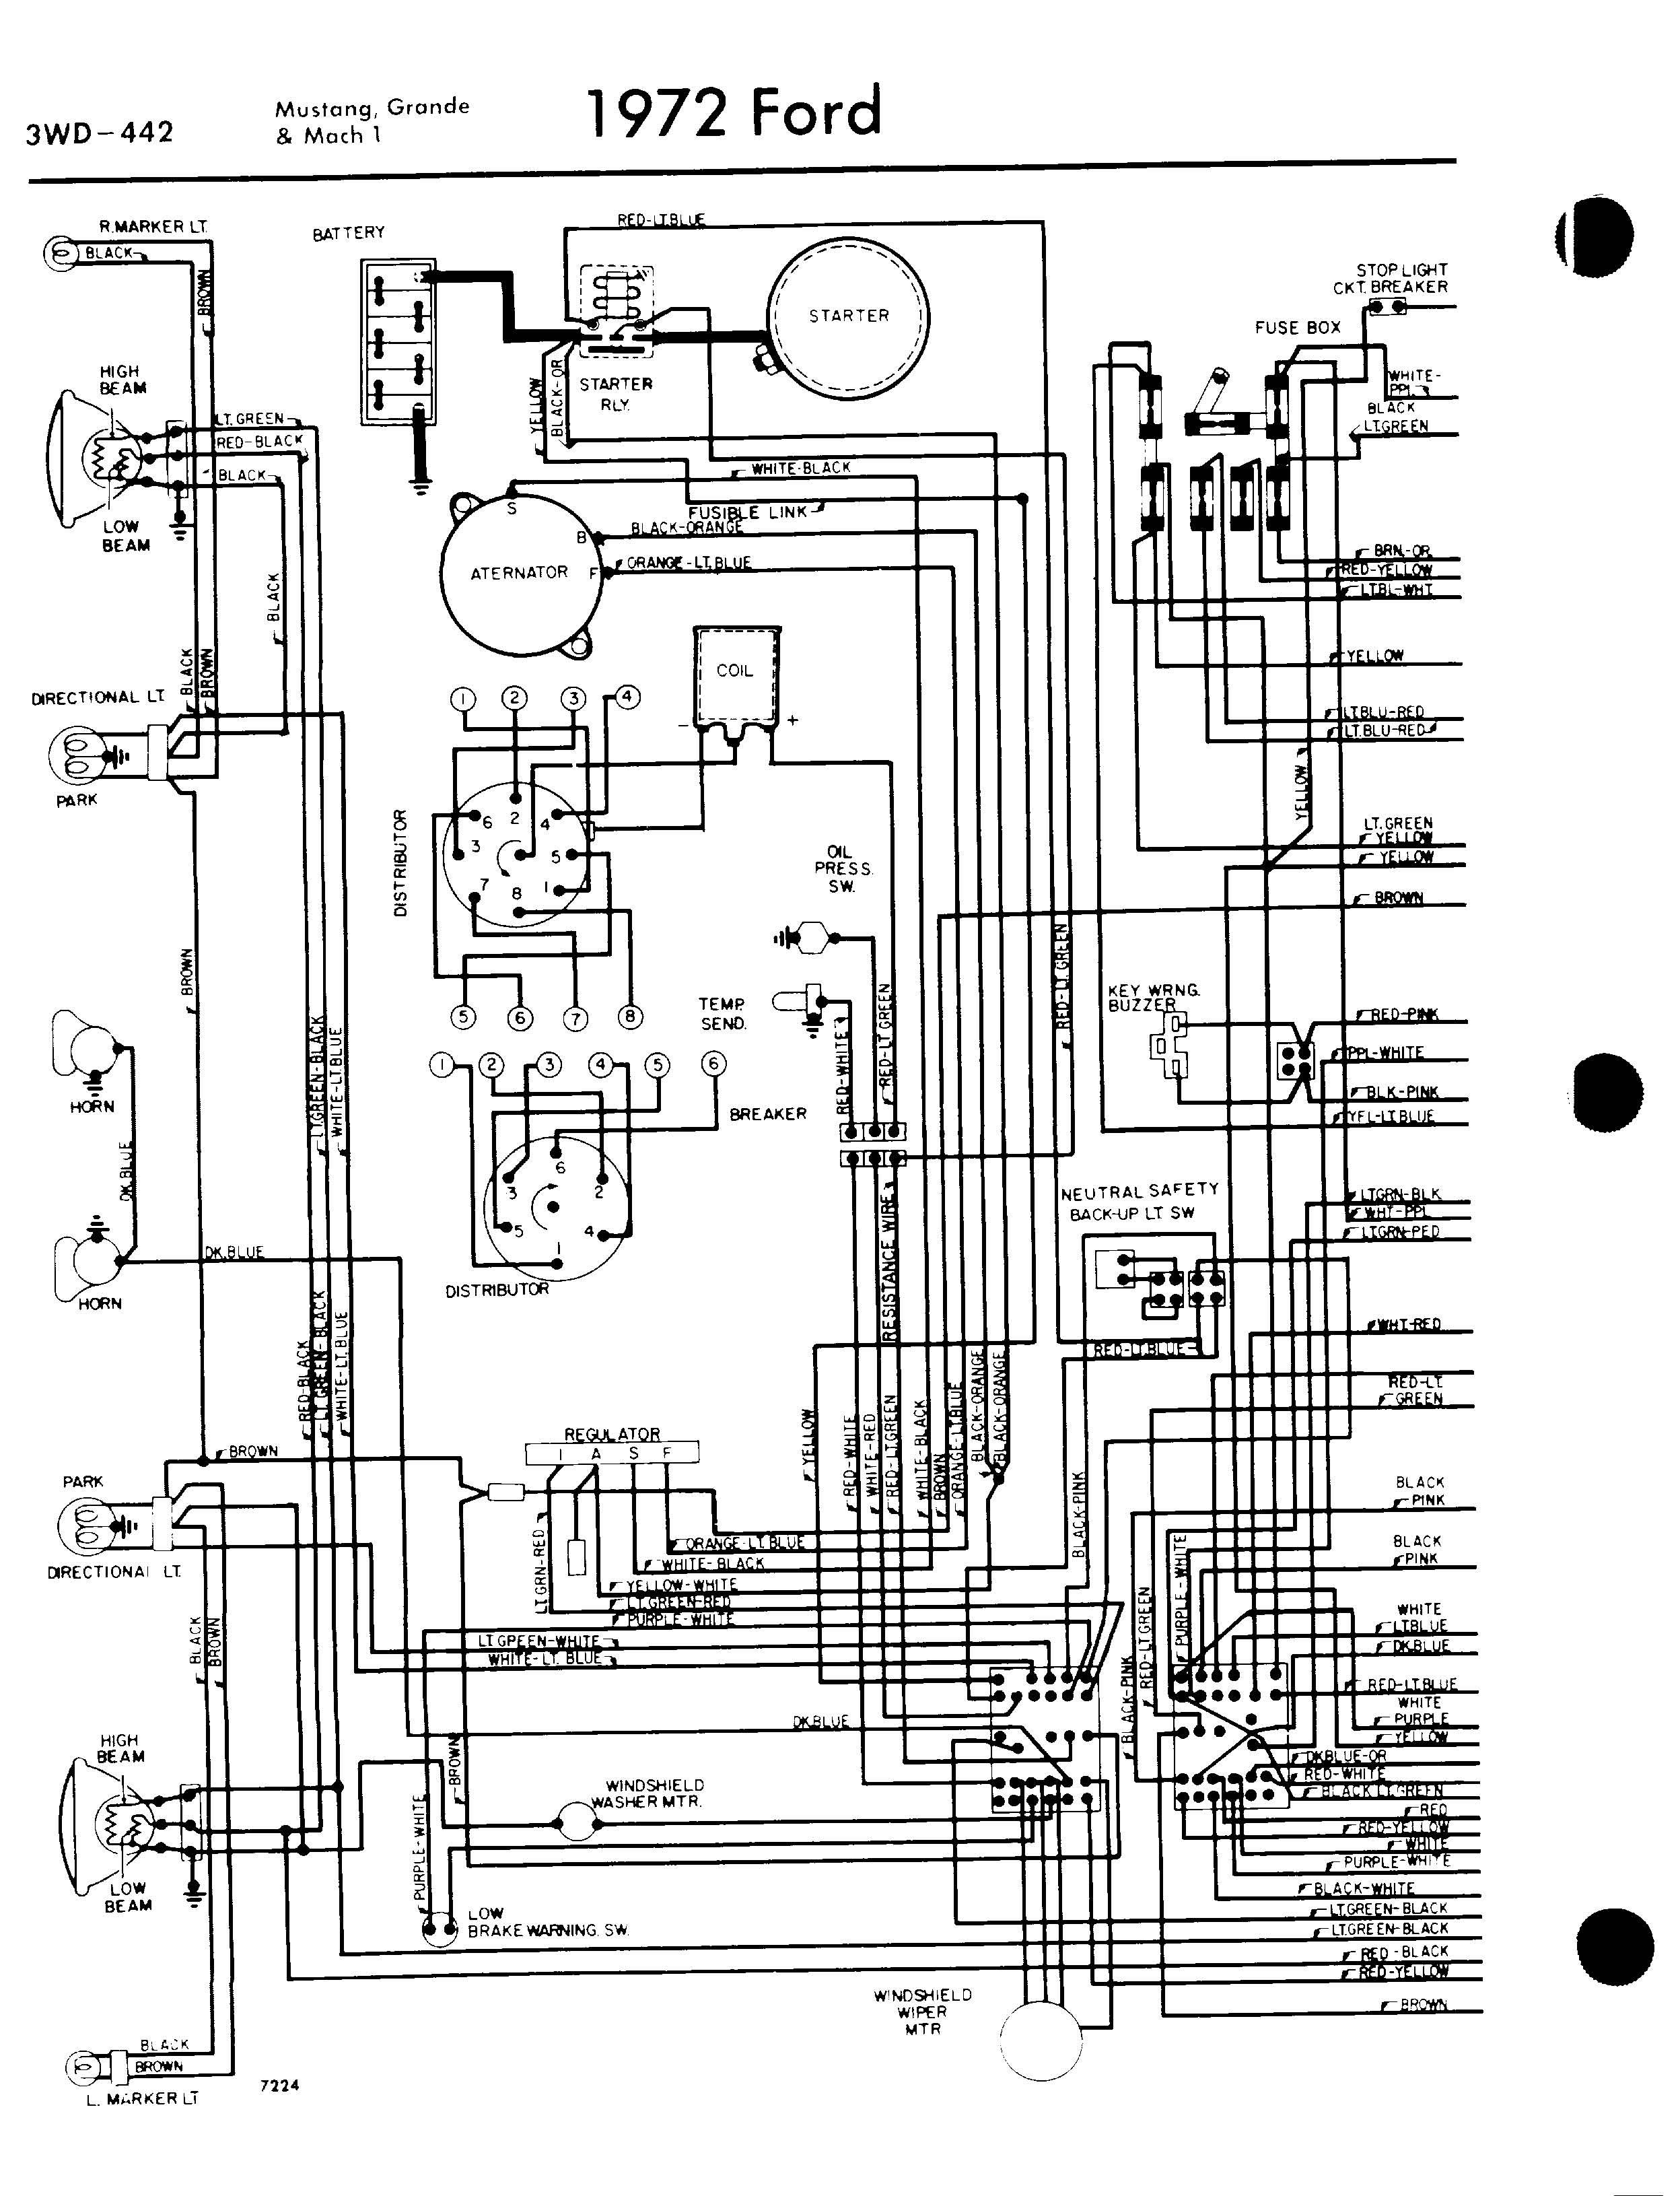 1971 ford mustang wiring harness auto electrical wiring diagram u2022 rh 6weeks co uk